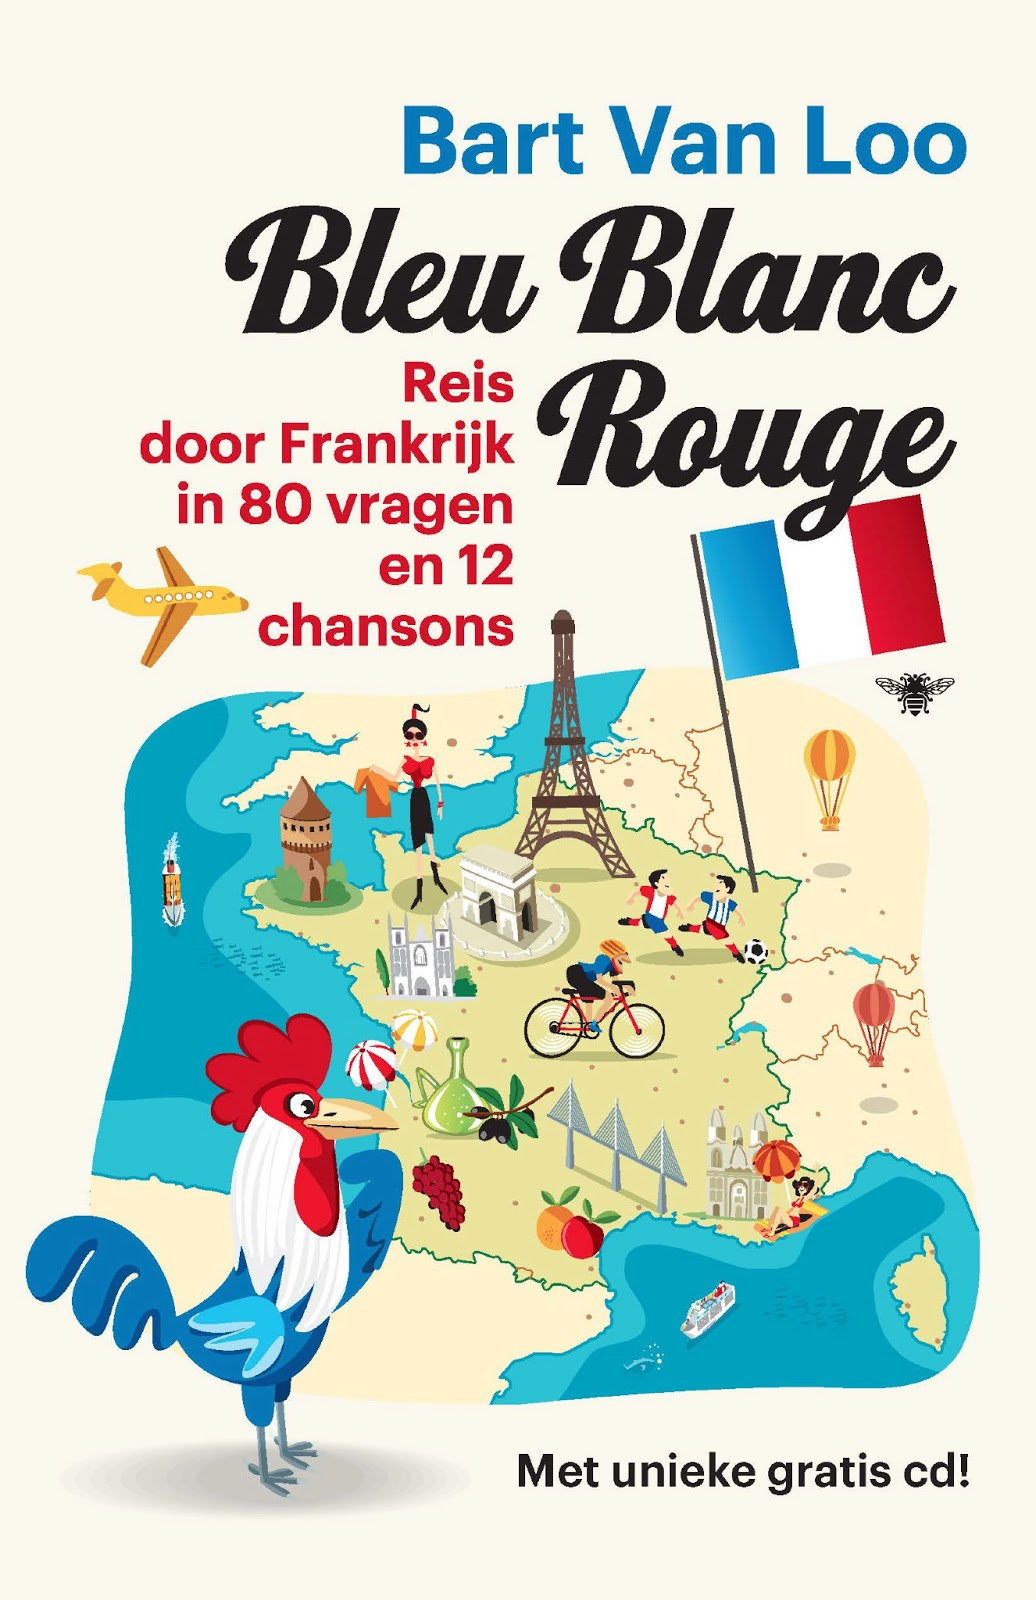 Franse Chansons Bleu Blanc Rouge Win Quotbleu Blanc Rouge Reis Door